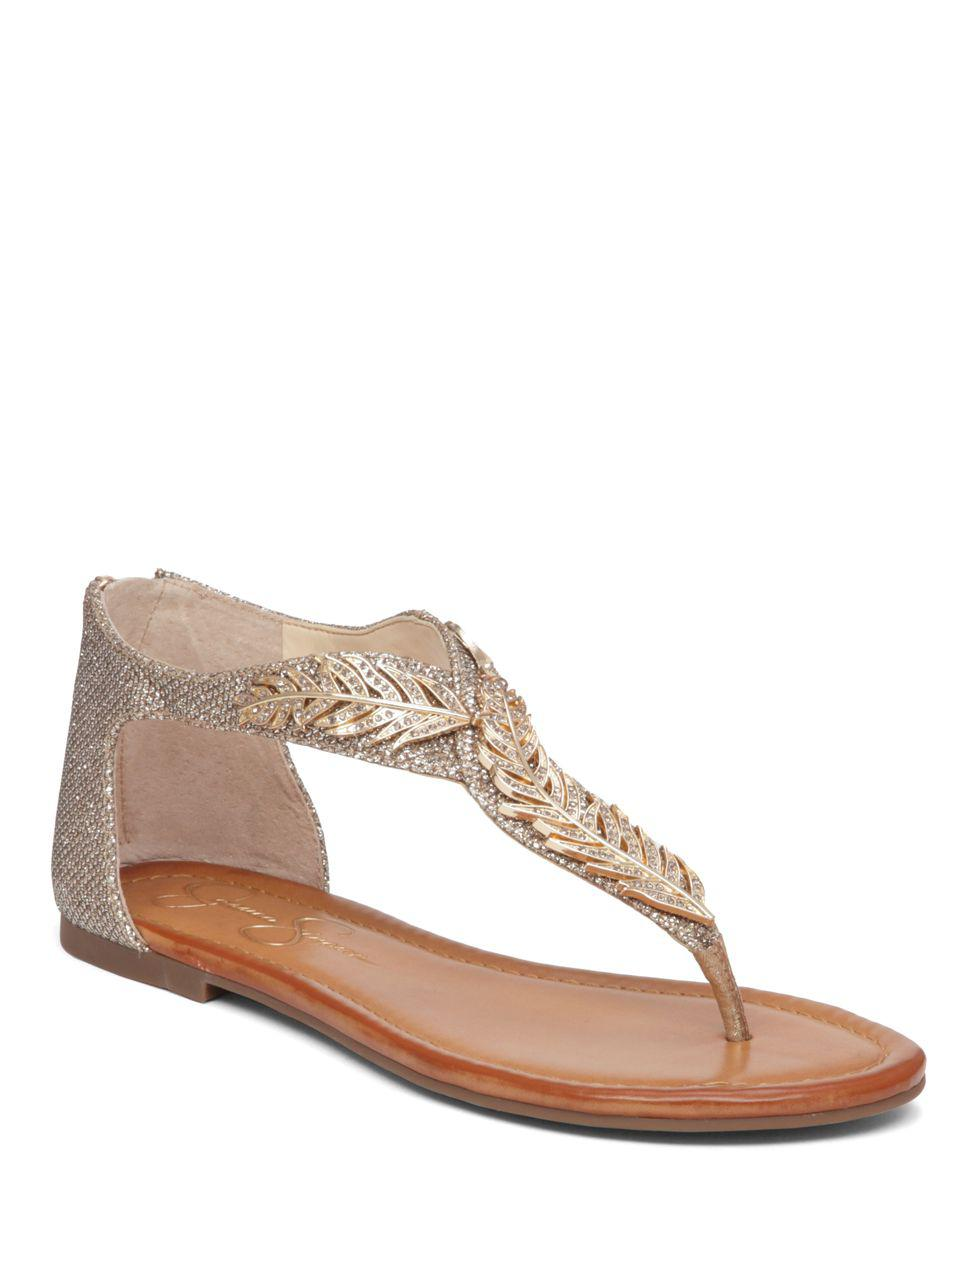 8d05647f7277 Lyst - Jessica Simpson Kalie Zippered Thong Sandals in Metallic